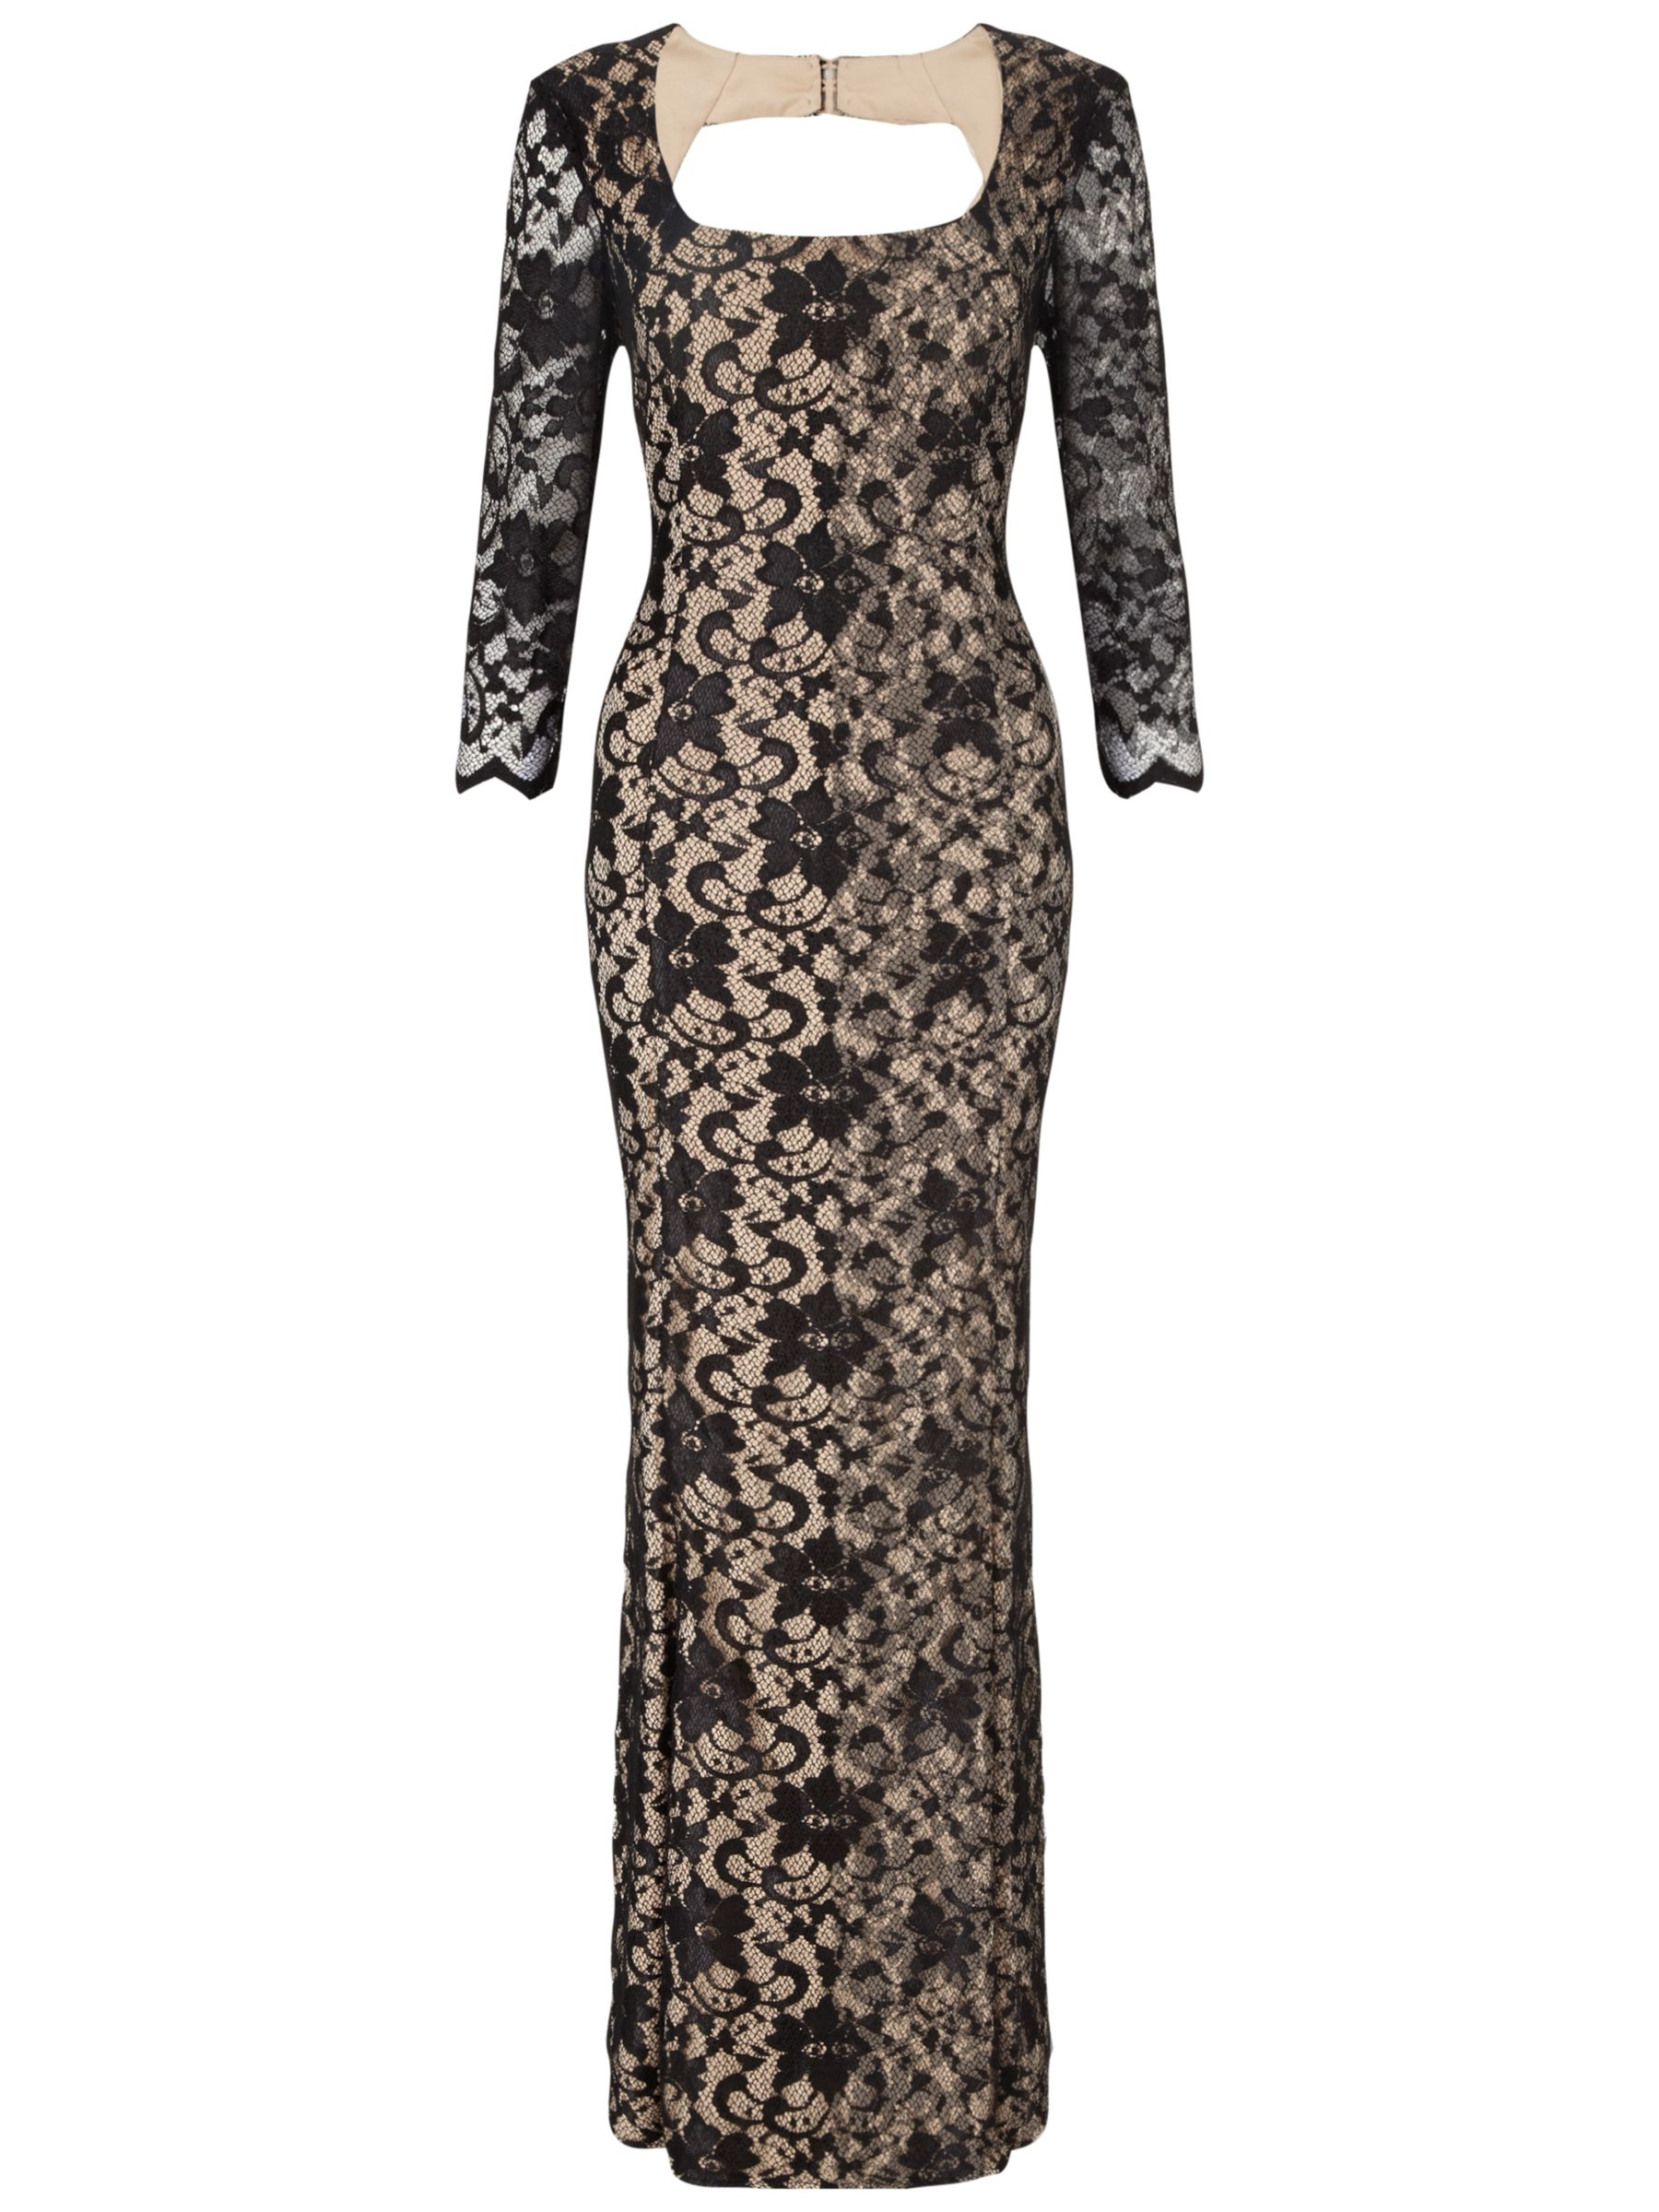 ariella natasha lace maxi dress black, ariella, natasha, lace, maxi, dress, black, 12 8 14 18 16, clearance, womenswear offers, womens dresses offers, new years party offers, women, plus size, inactive womenswear, new reductions, party outfits, lace dress, womens dresses, evening gowns, special offers, 1621507